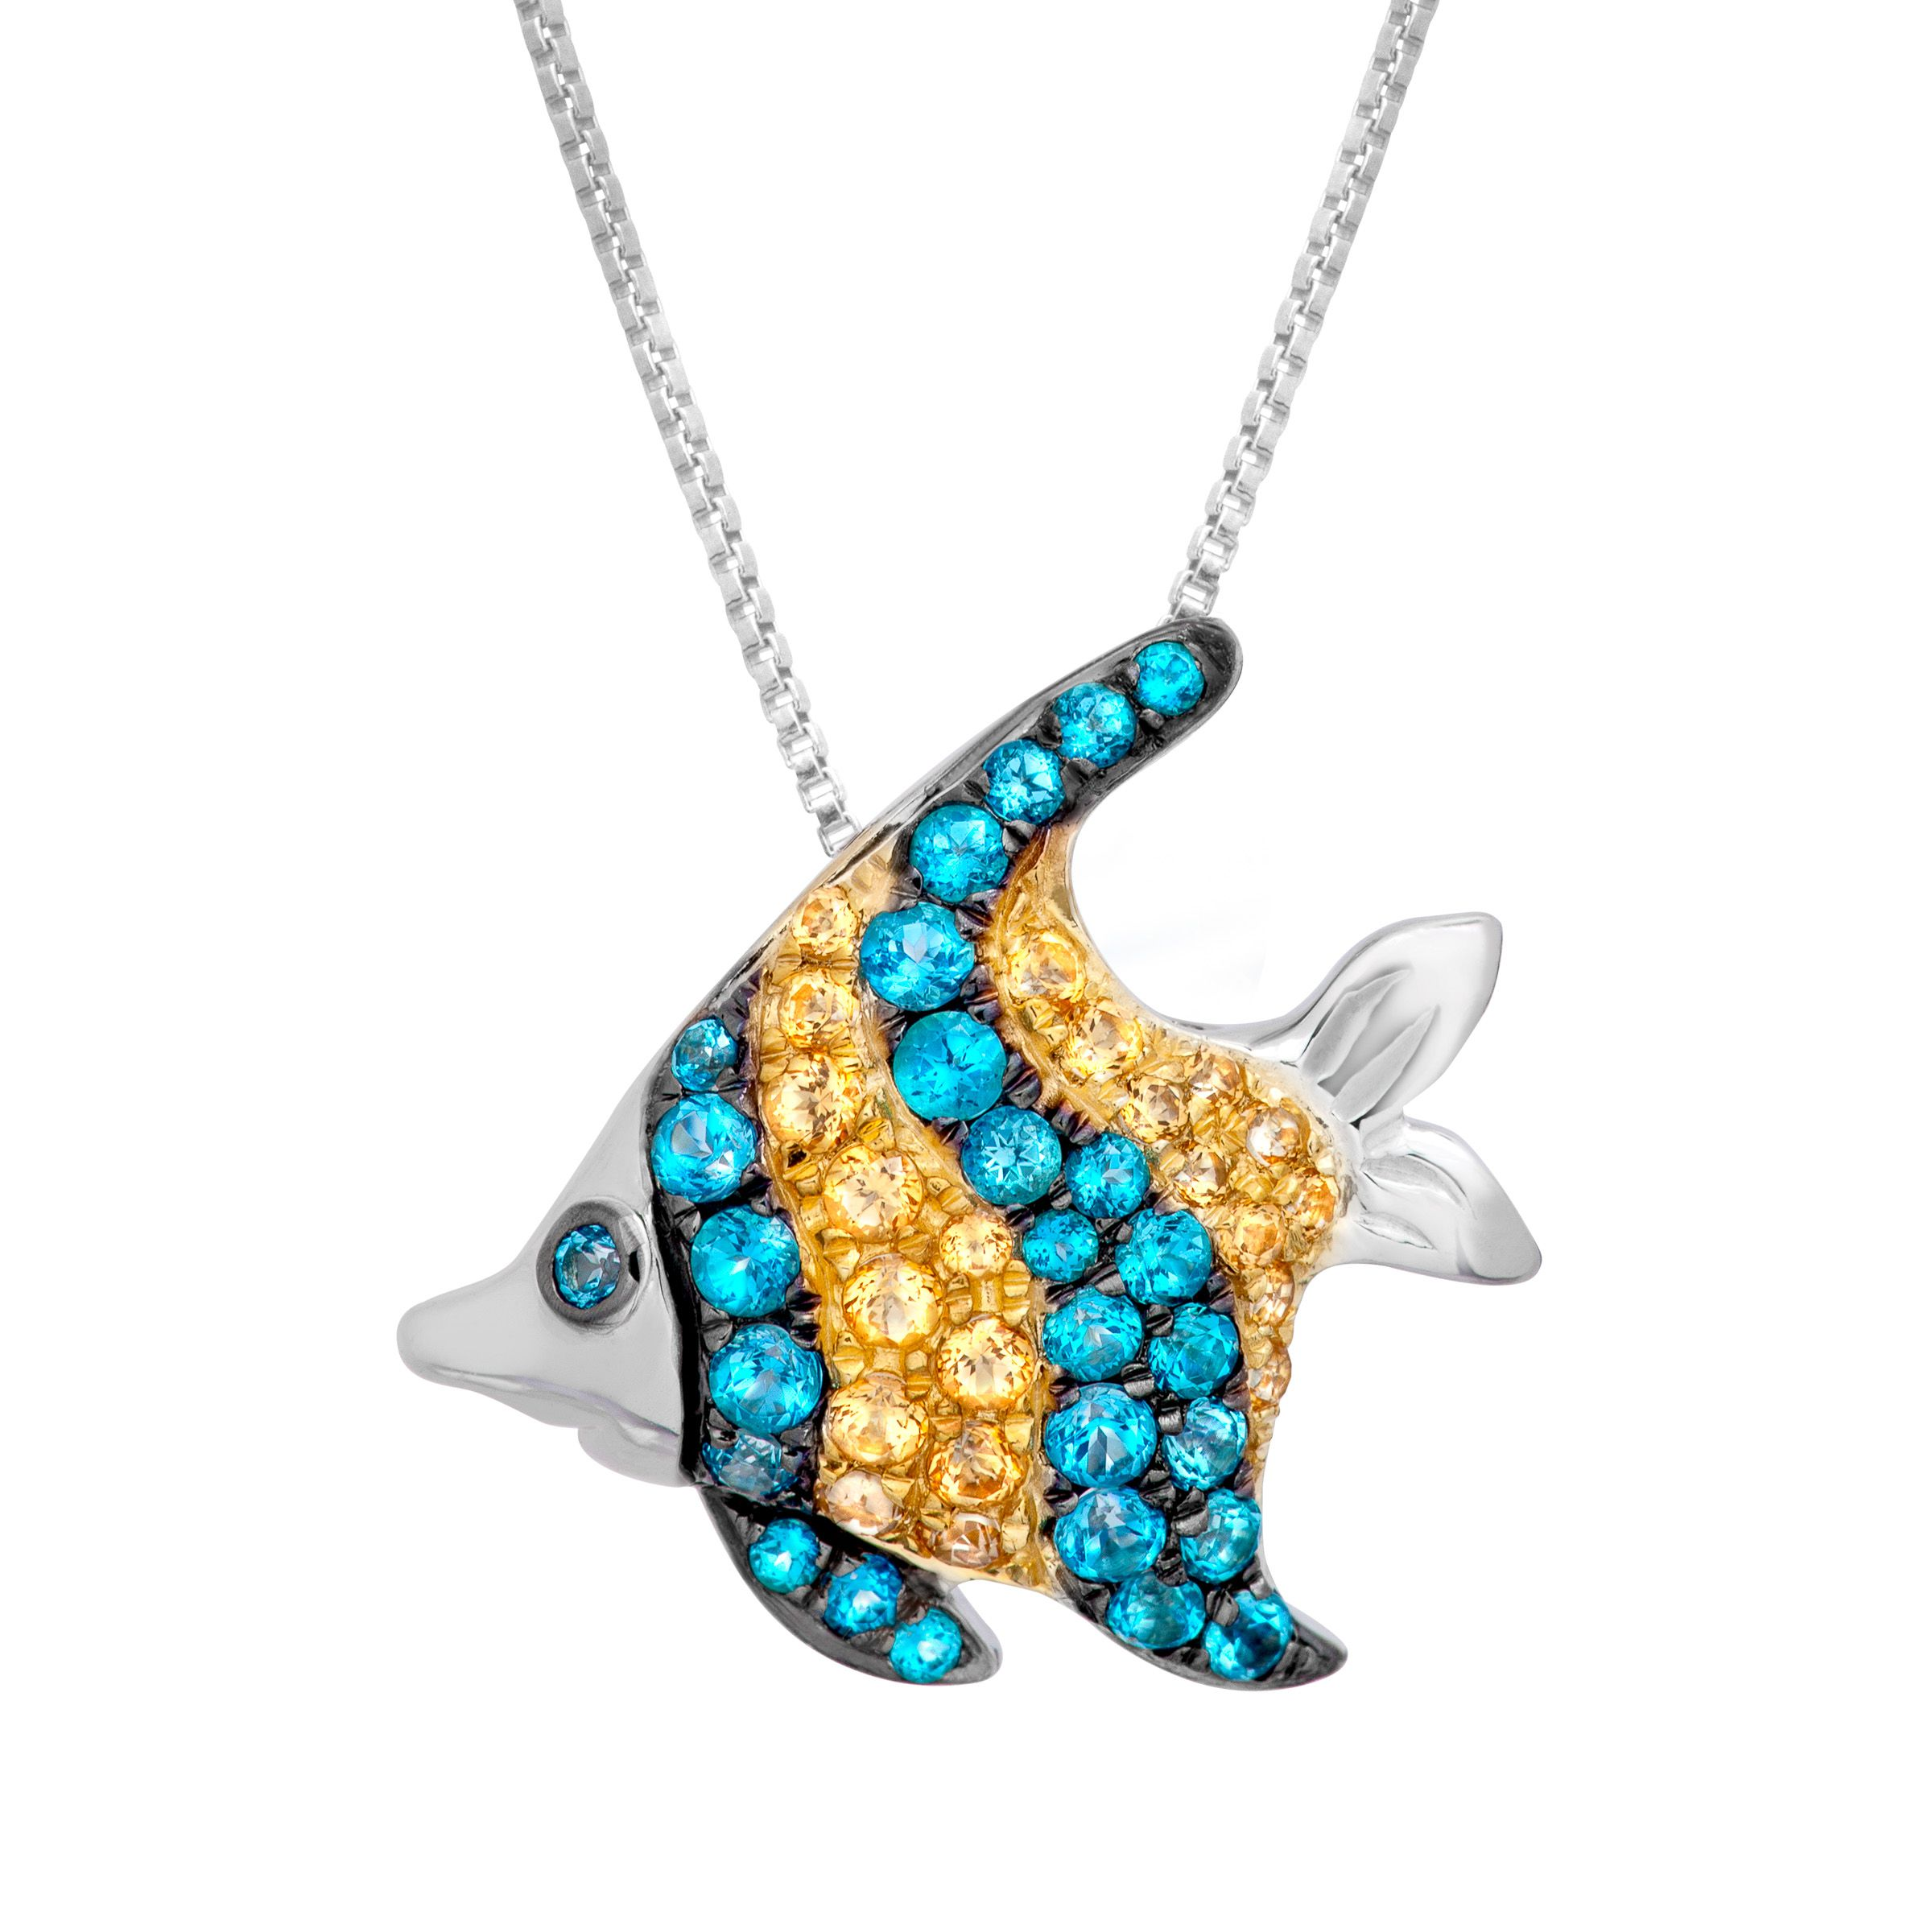 pendant house fish silver of necklace products lavande img copy necklaces sterling collections